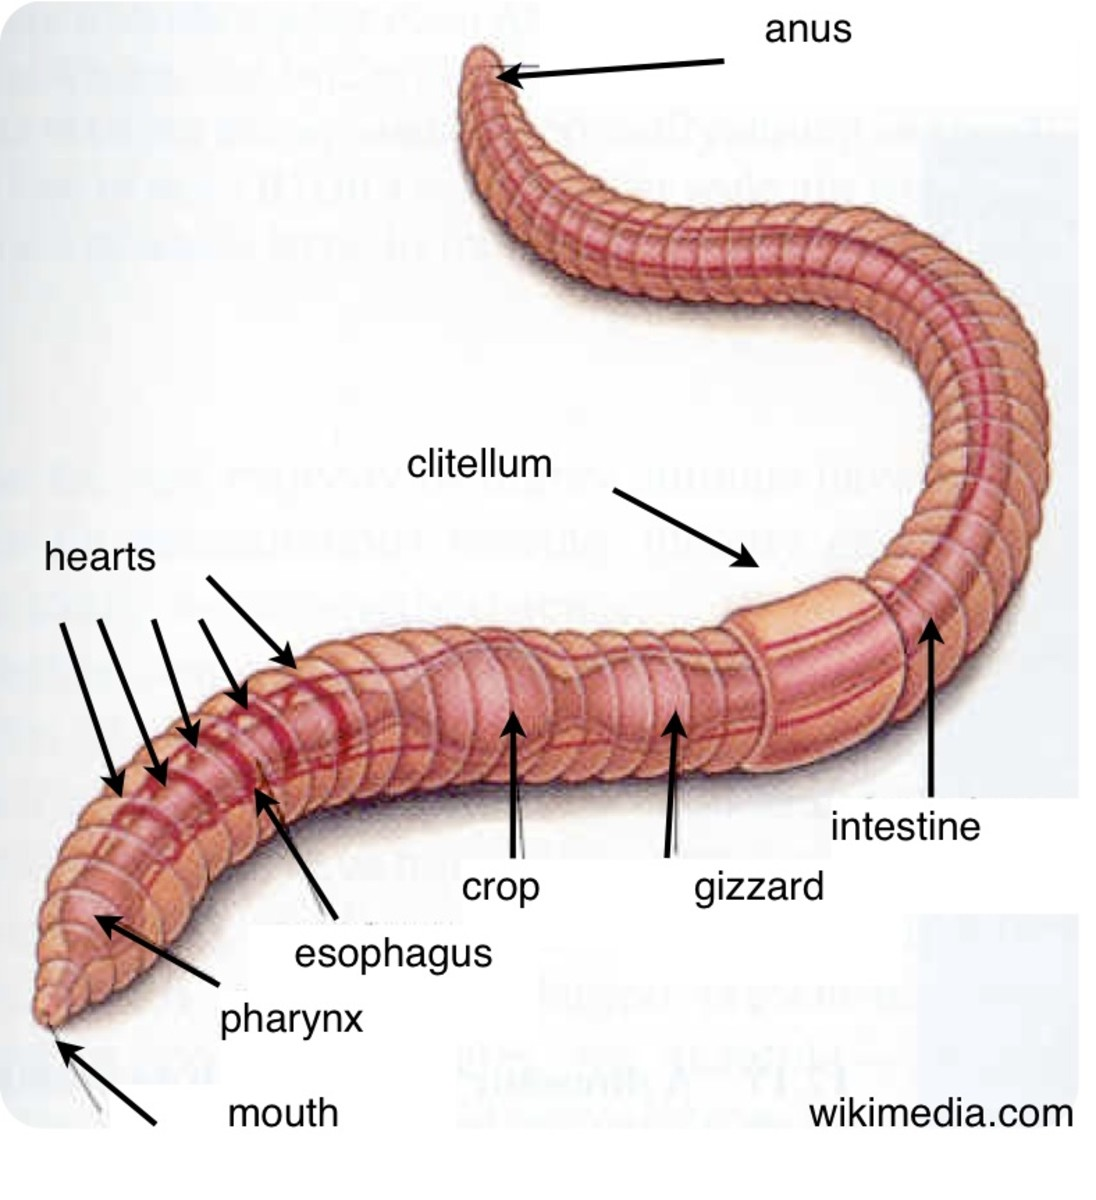 Earthworms Fun Activities To Help Kids Learn About Worms on Earthworm Dissection With Labeled Body Parts